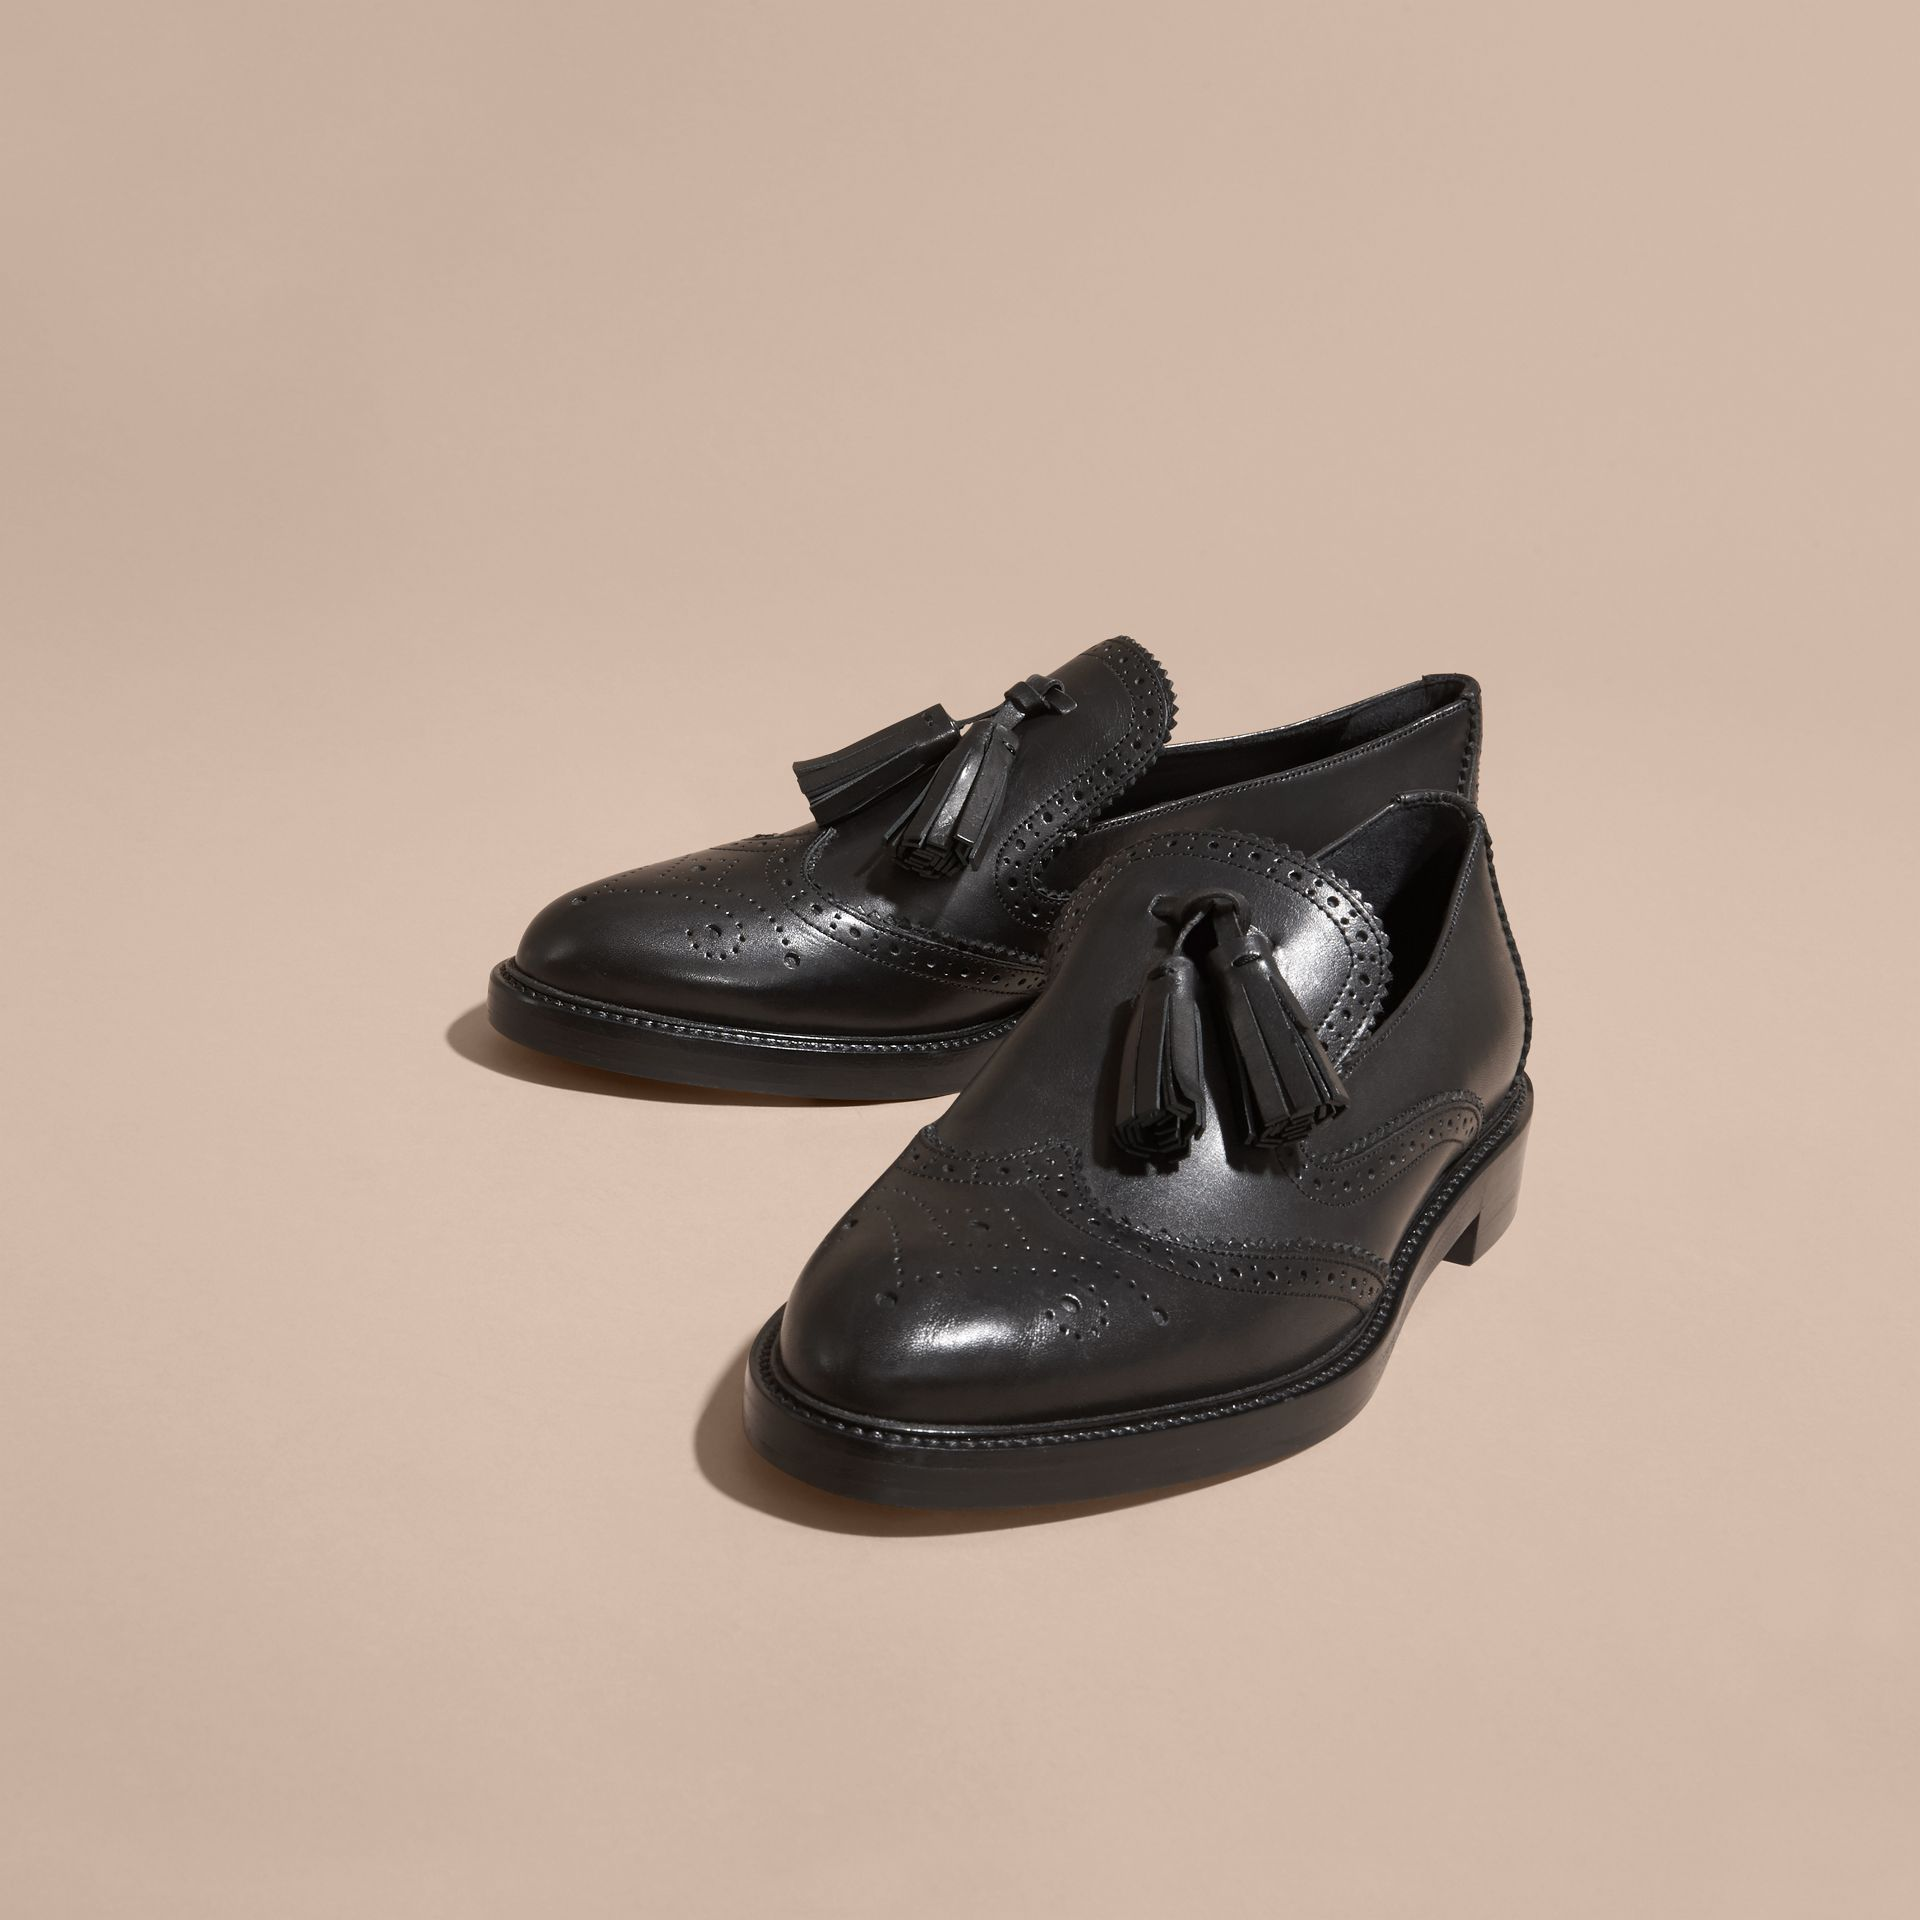 Leather Tassel Loafers in Black - Women | Burberry - gallery image 3